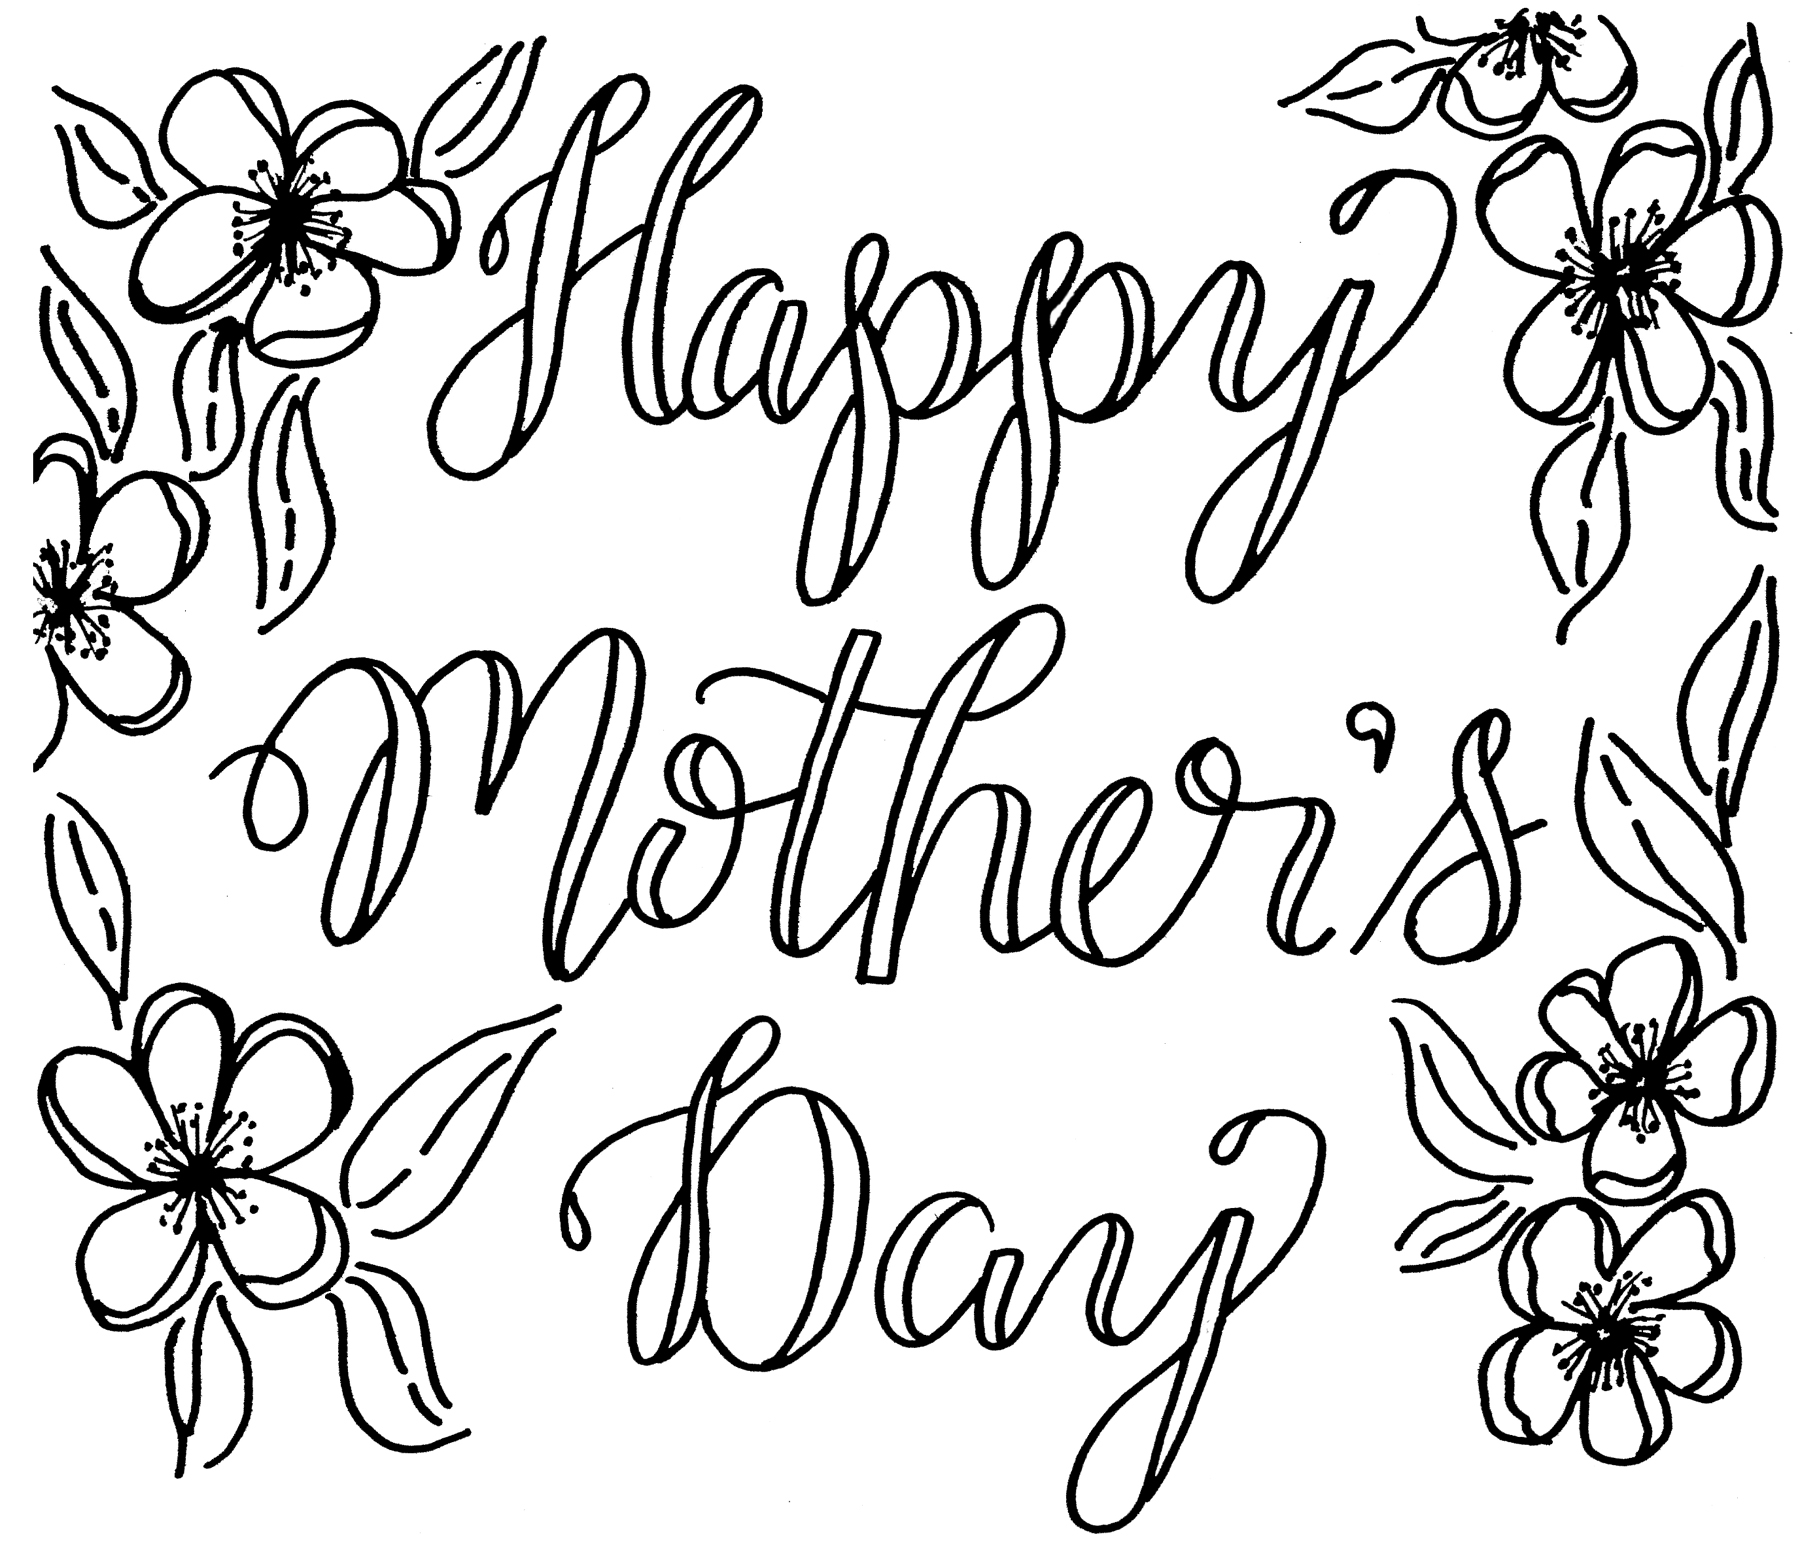 1800x1554 Easy^ Mothers Day Drawings Ideas, Pictures For Cards Mothers Day